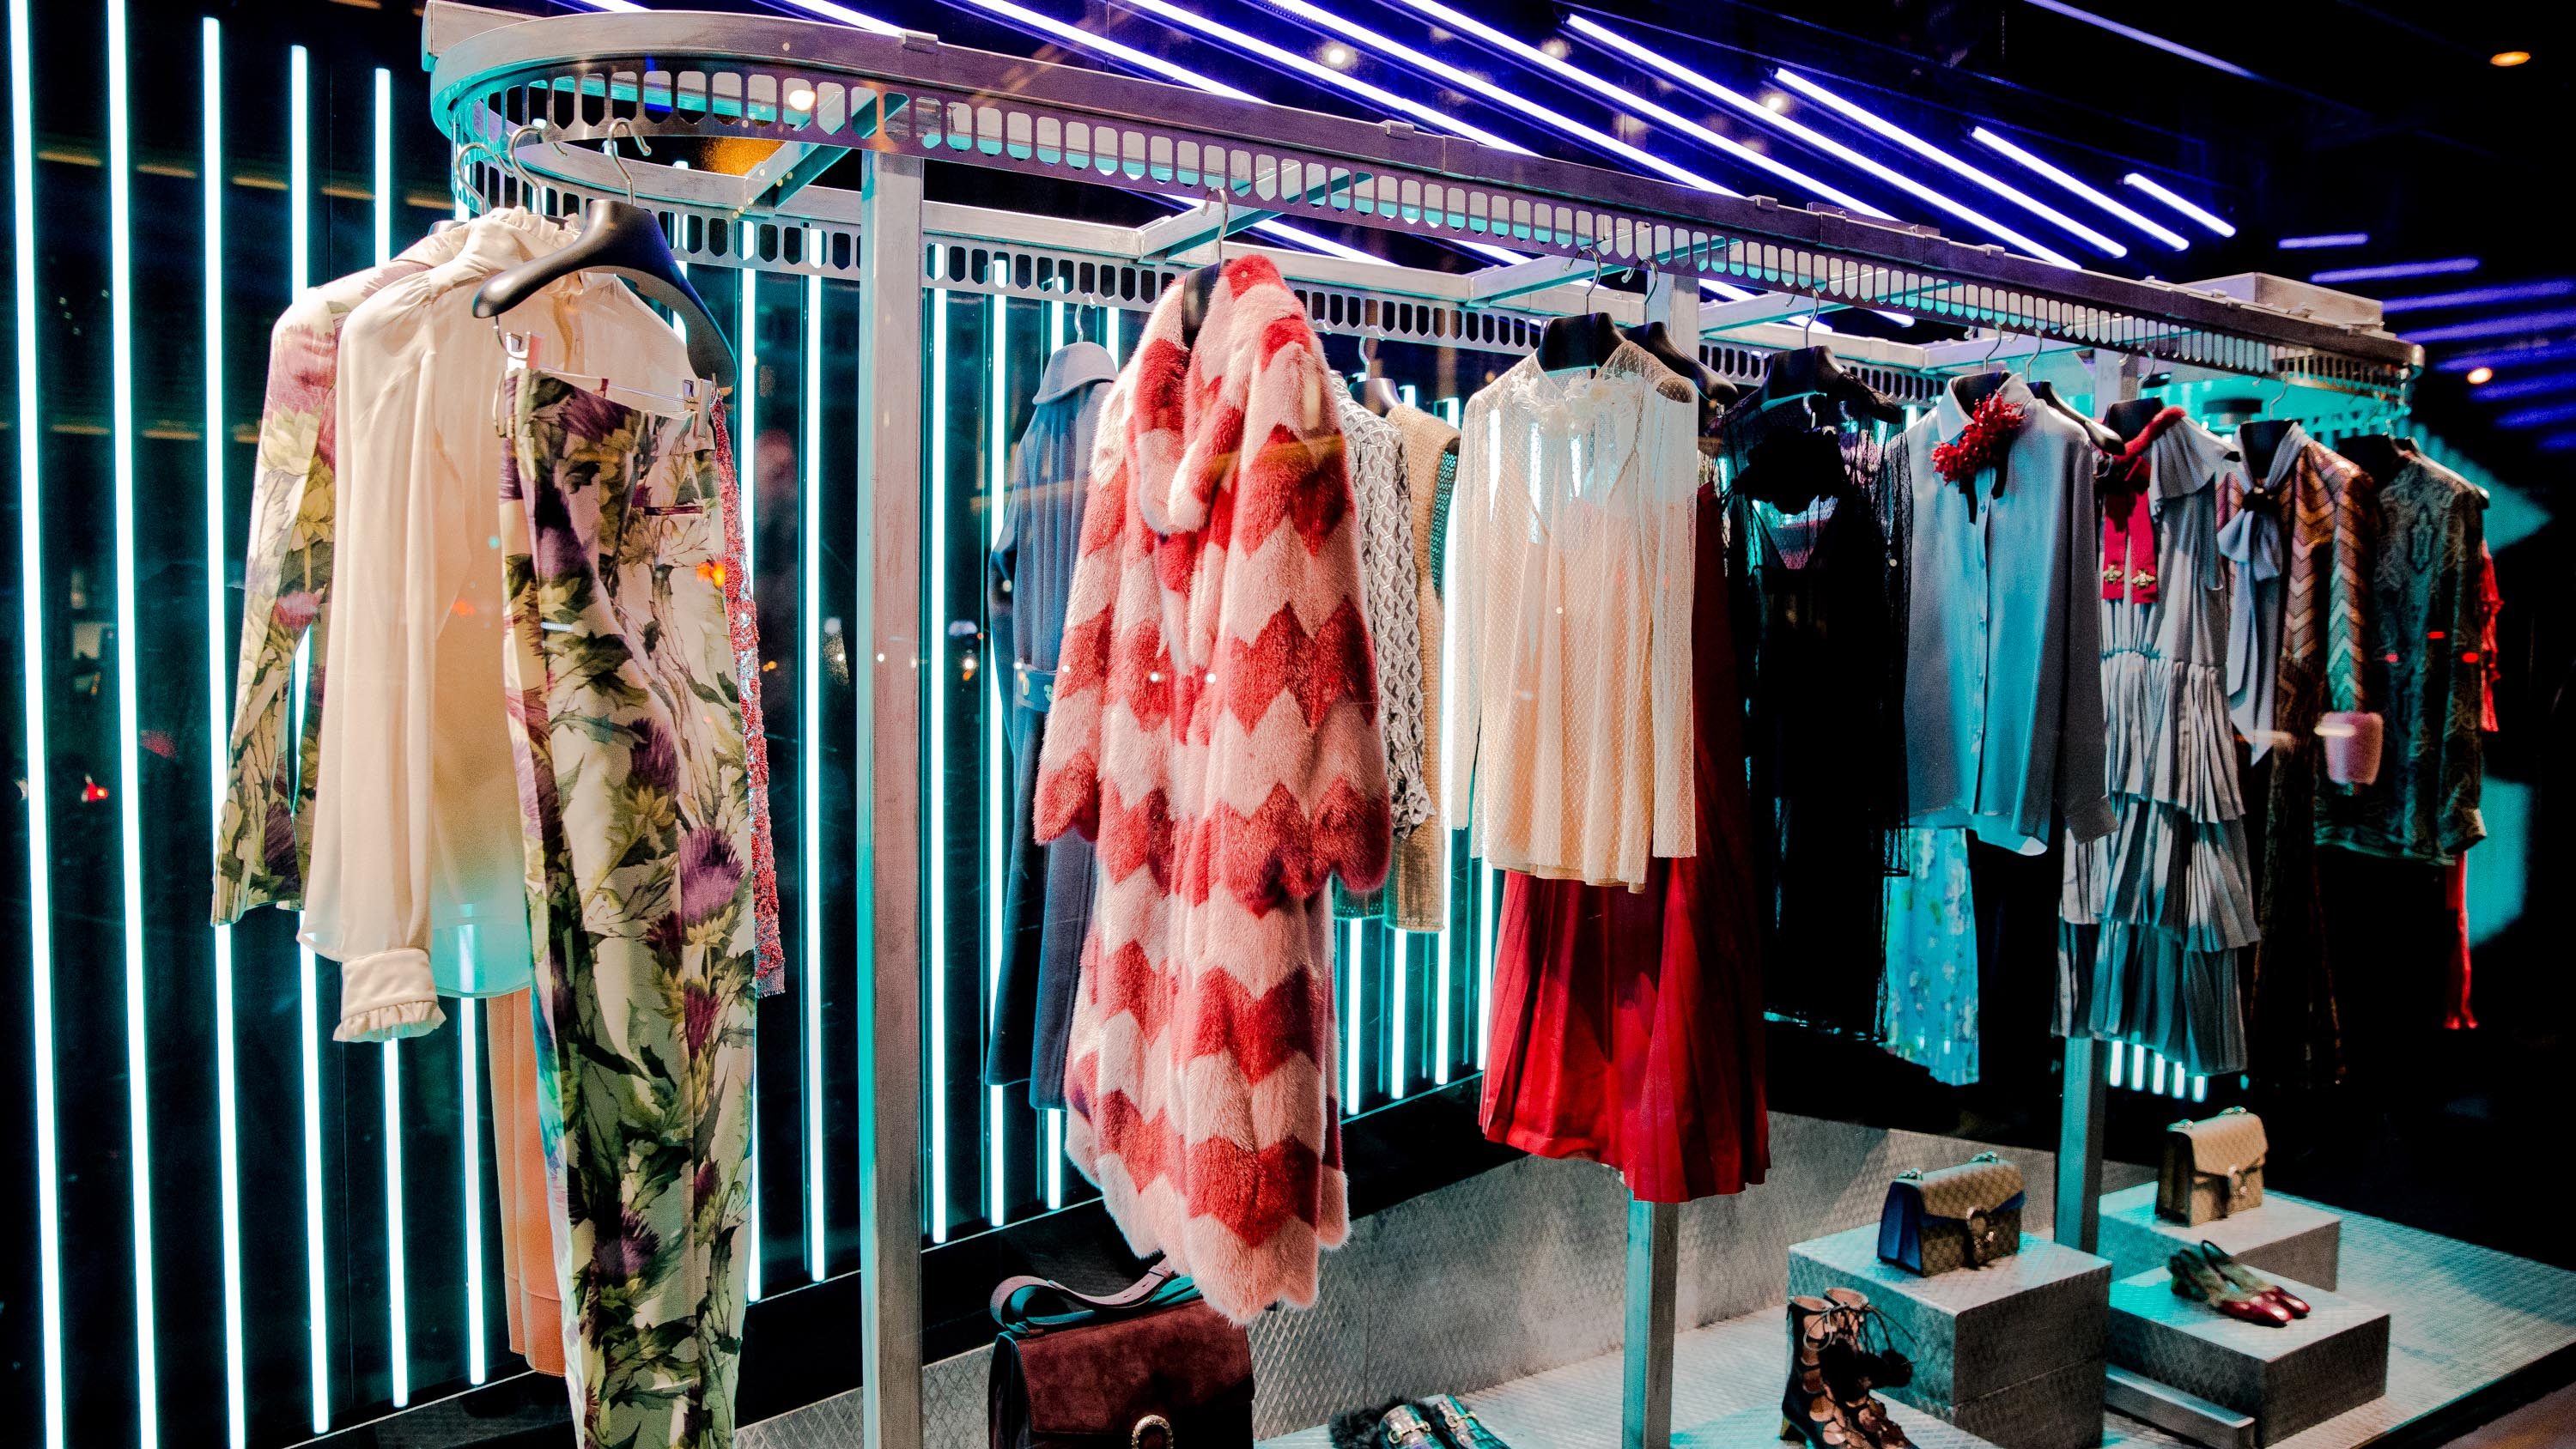 gucci unveils window design for alessandro michele u0026 39 s first collection